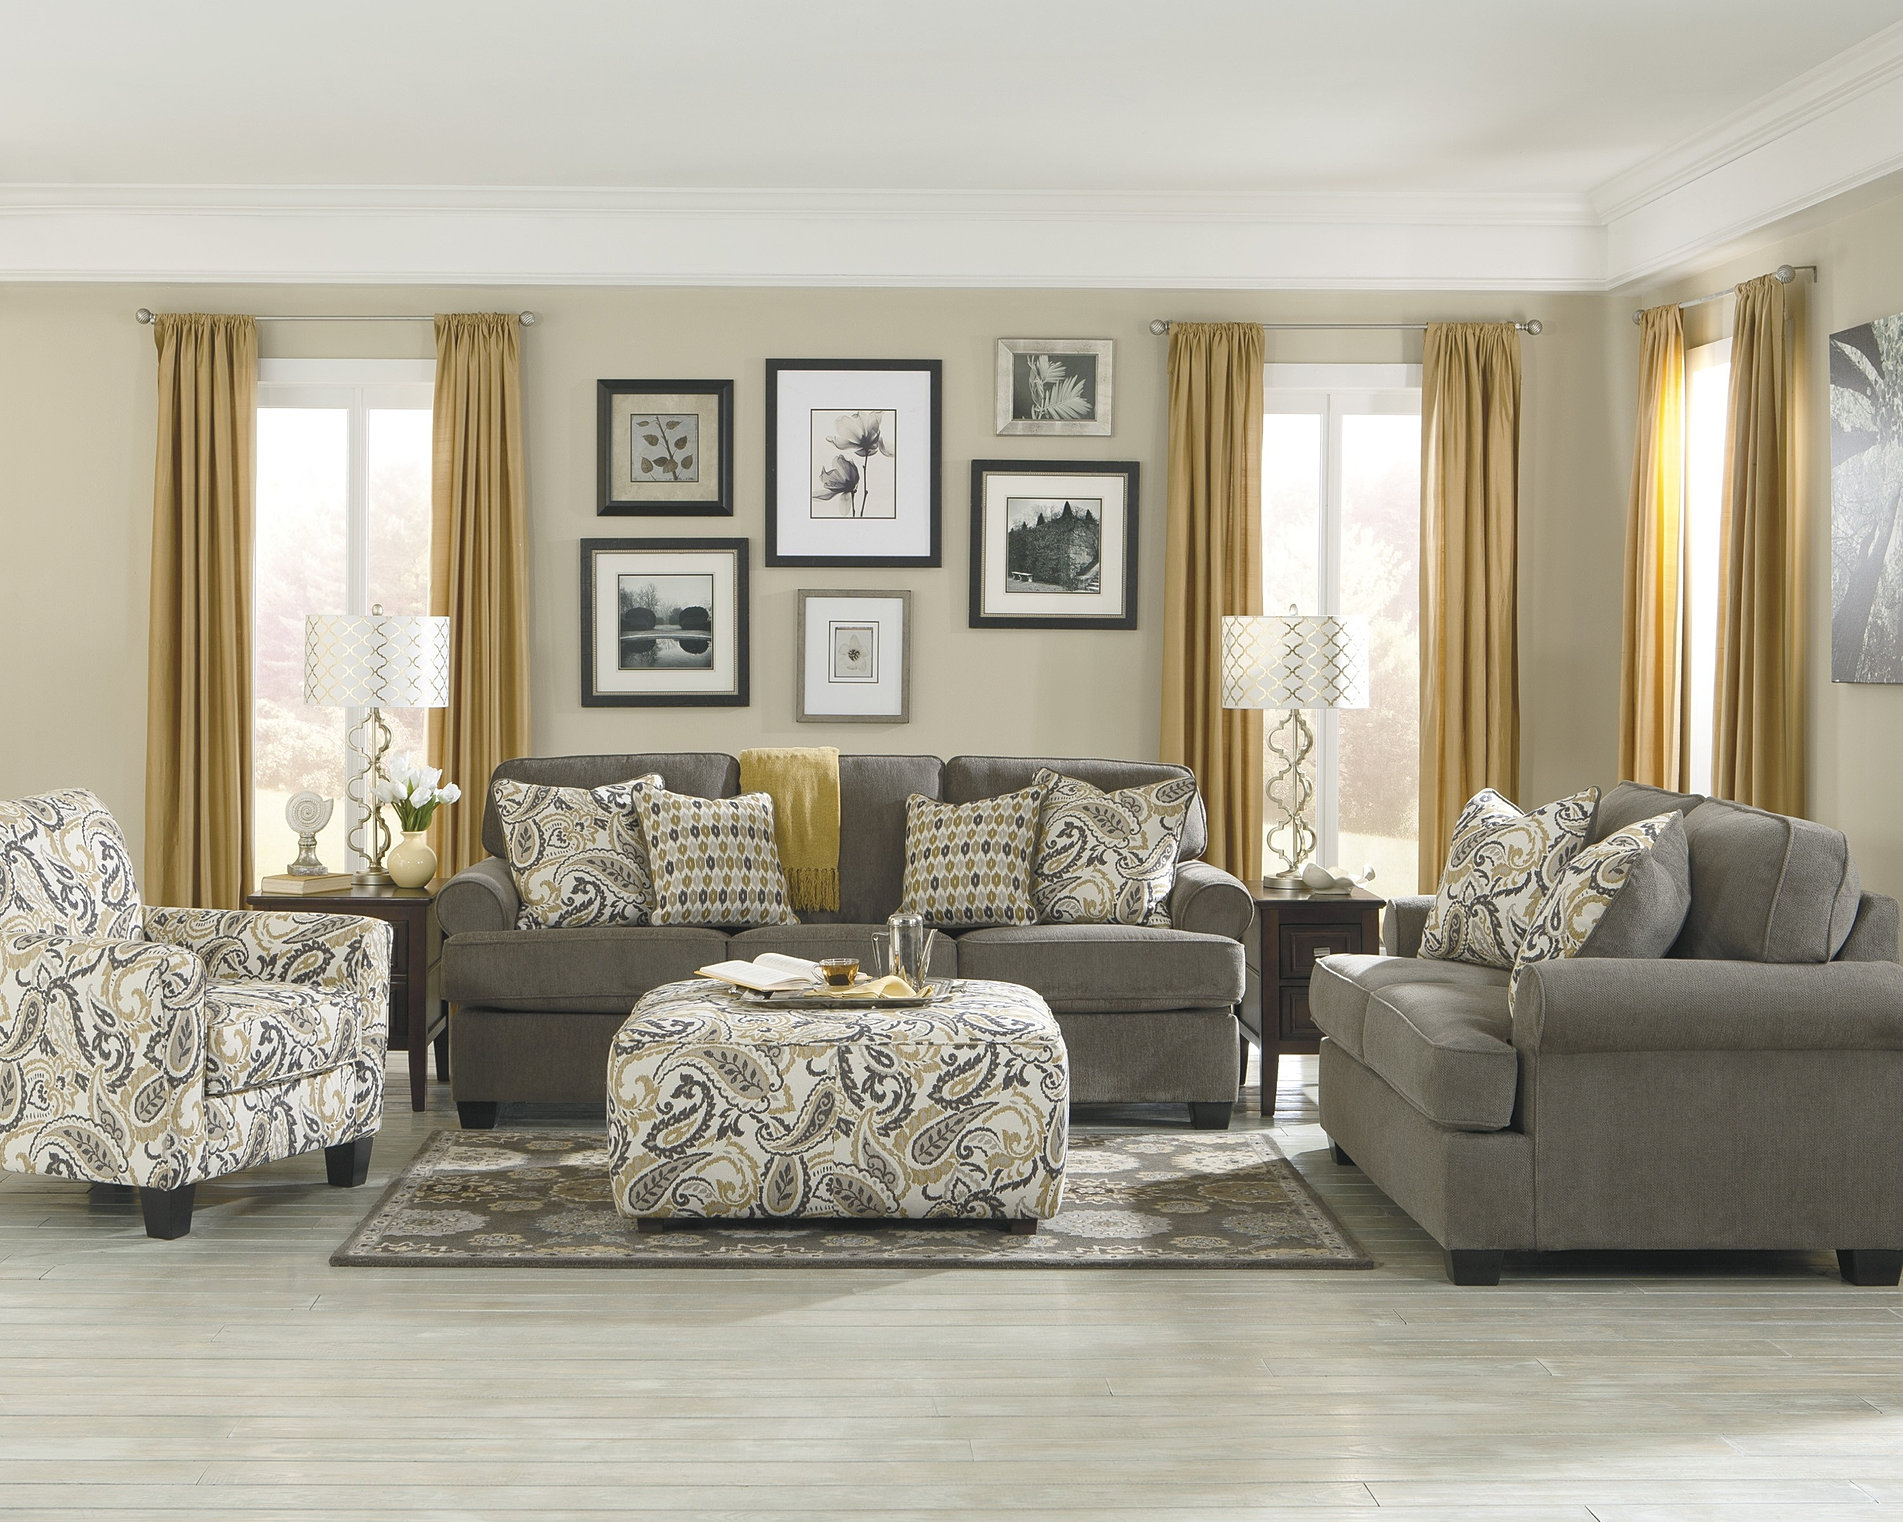 nationwide furniture on gratiot | Osetacouleur